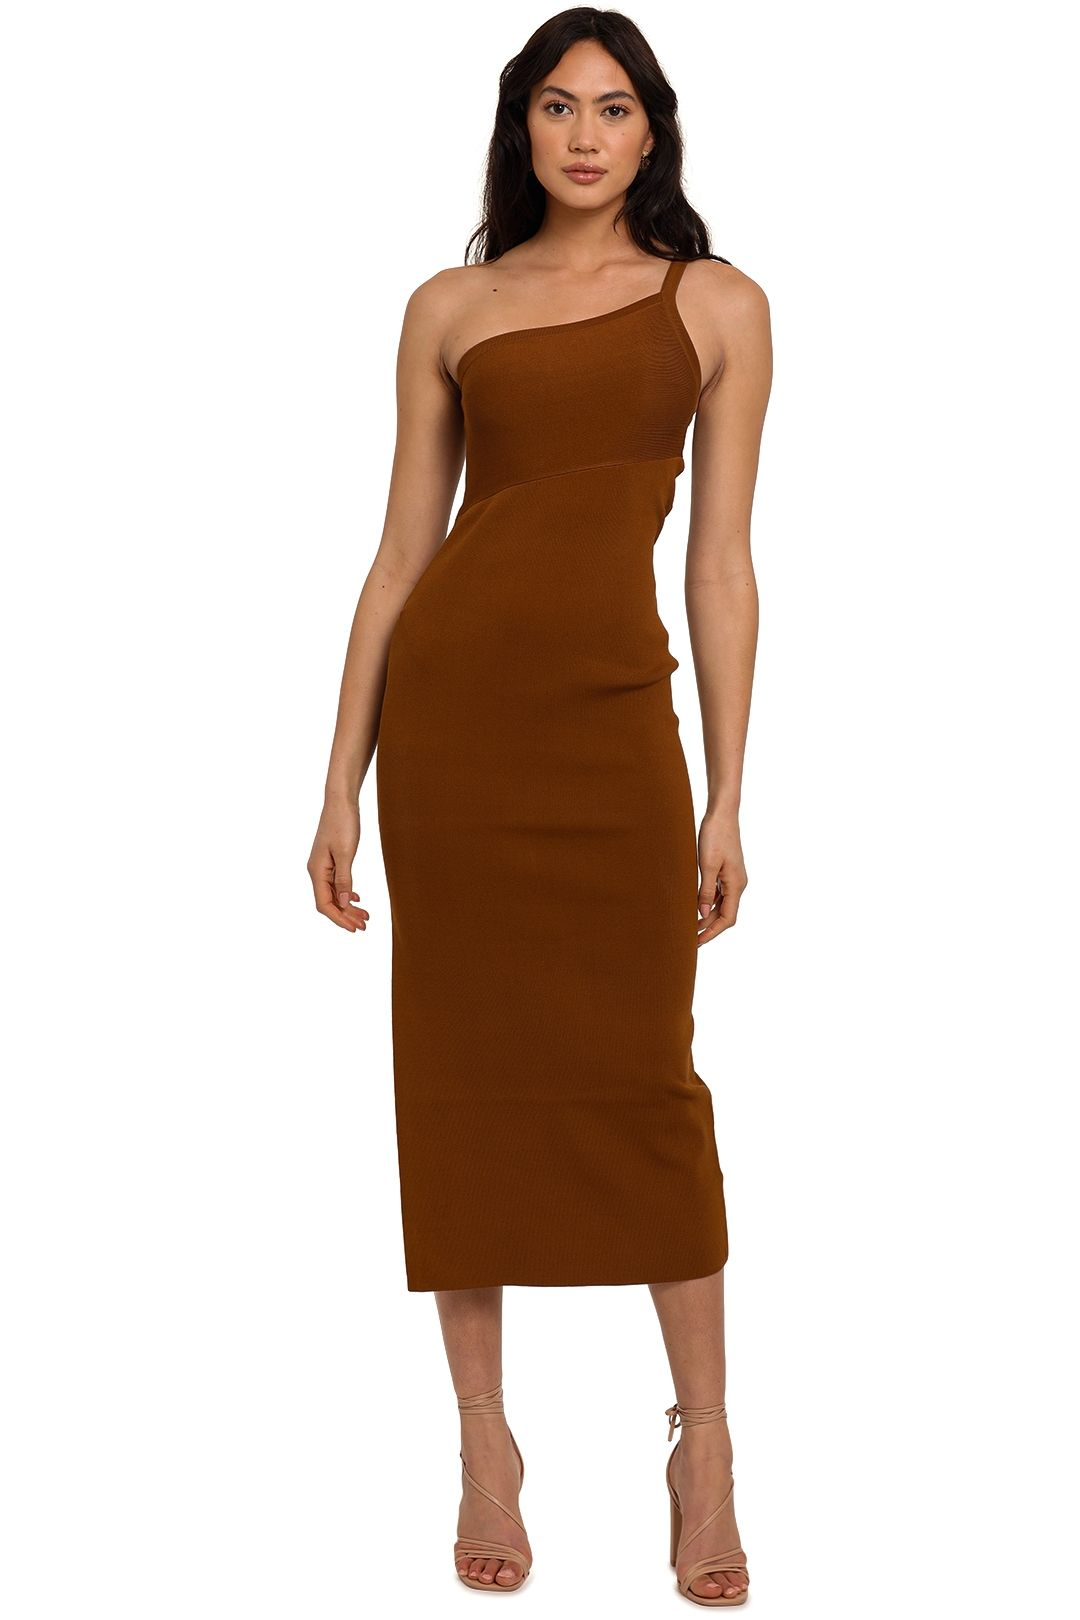 Significant Other Alicia Knit Dress Chocolate midi